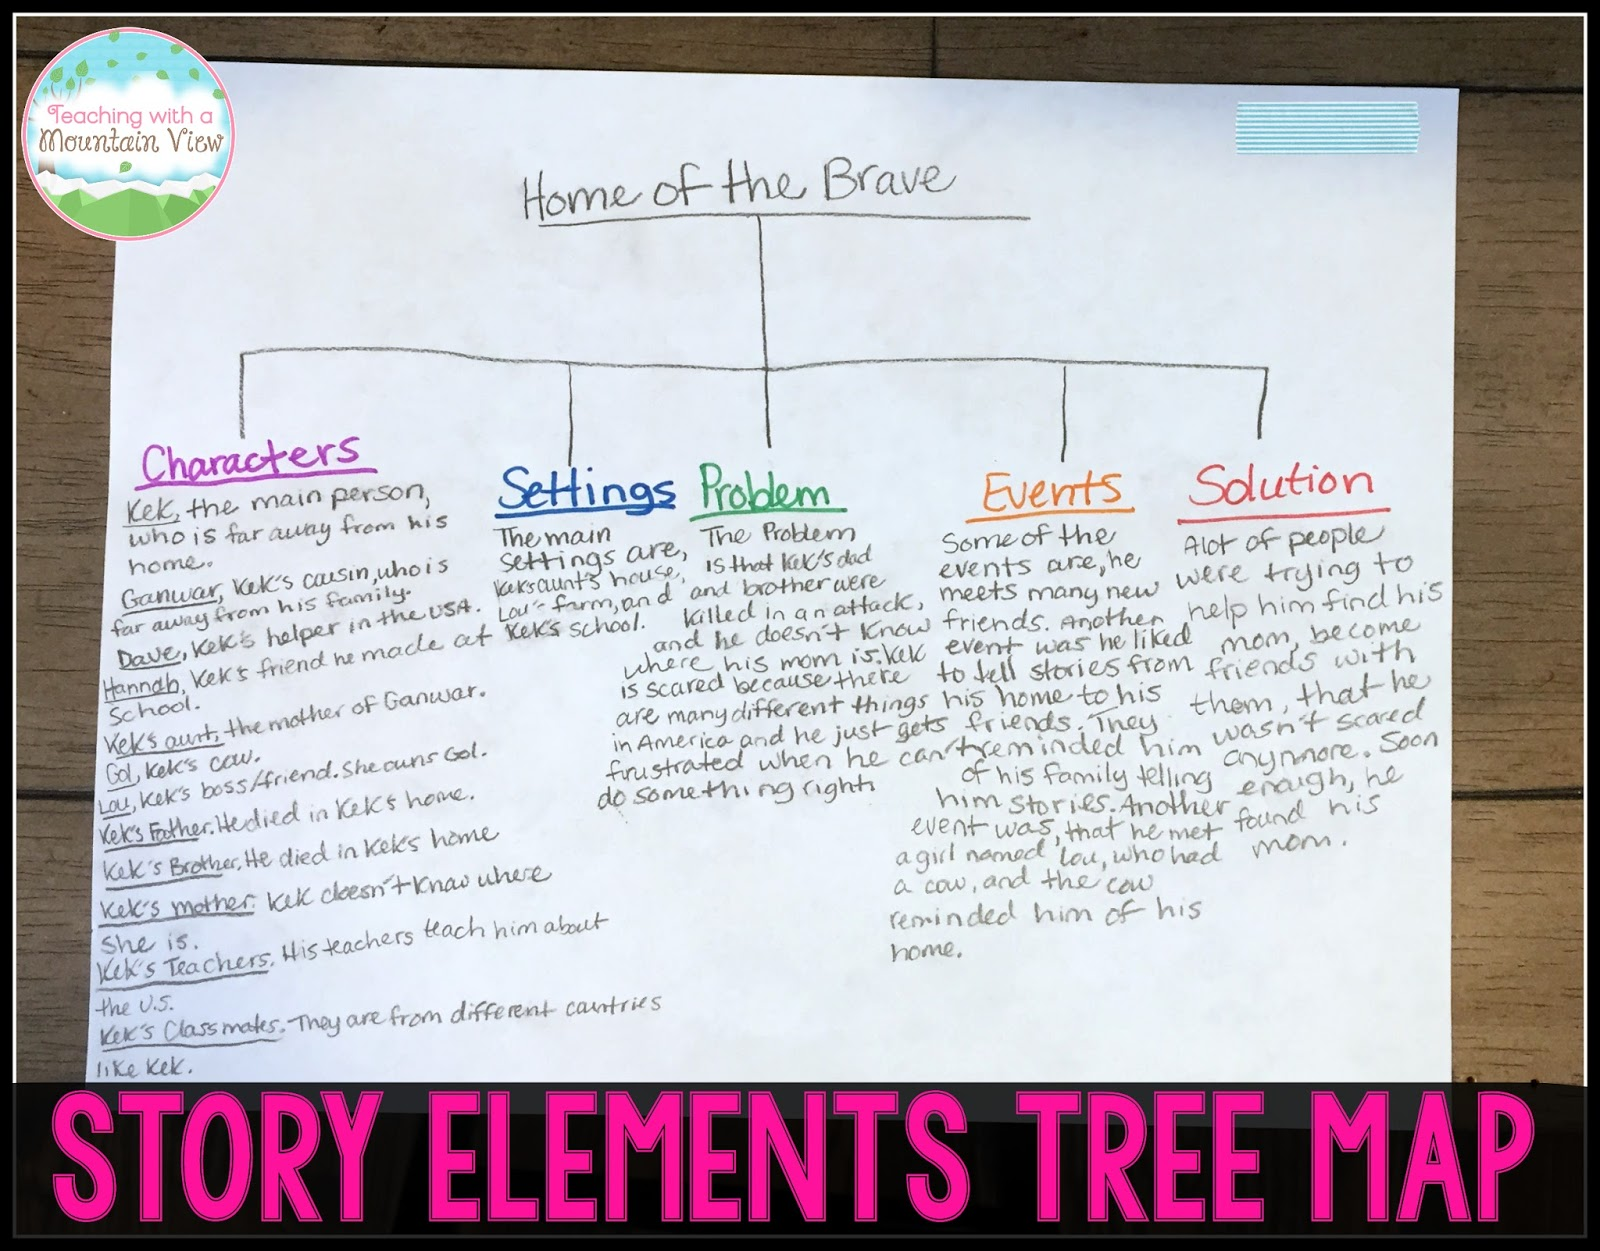 medium resolution of during our story elements unit one of the culminating assignments i have them complete is a story elements tree map from thinking maps here s an example